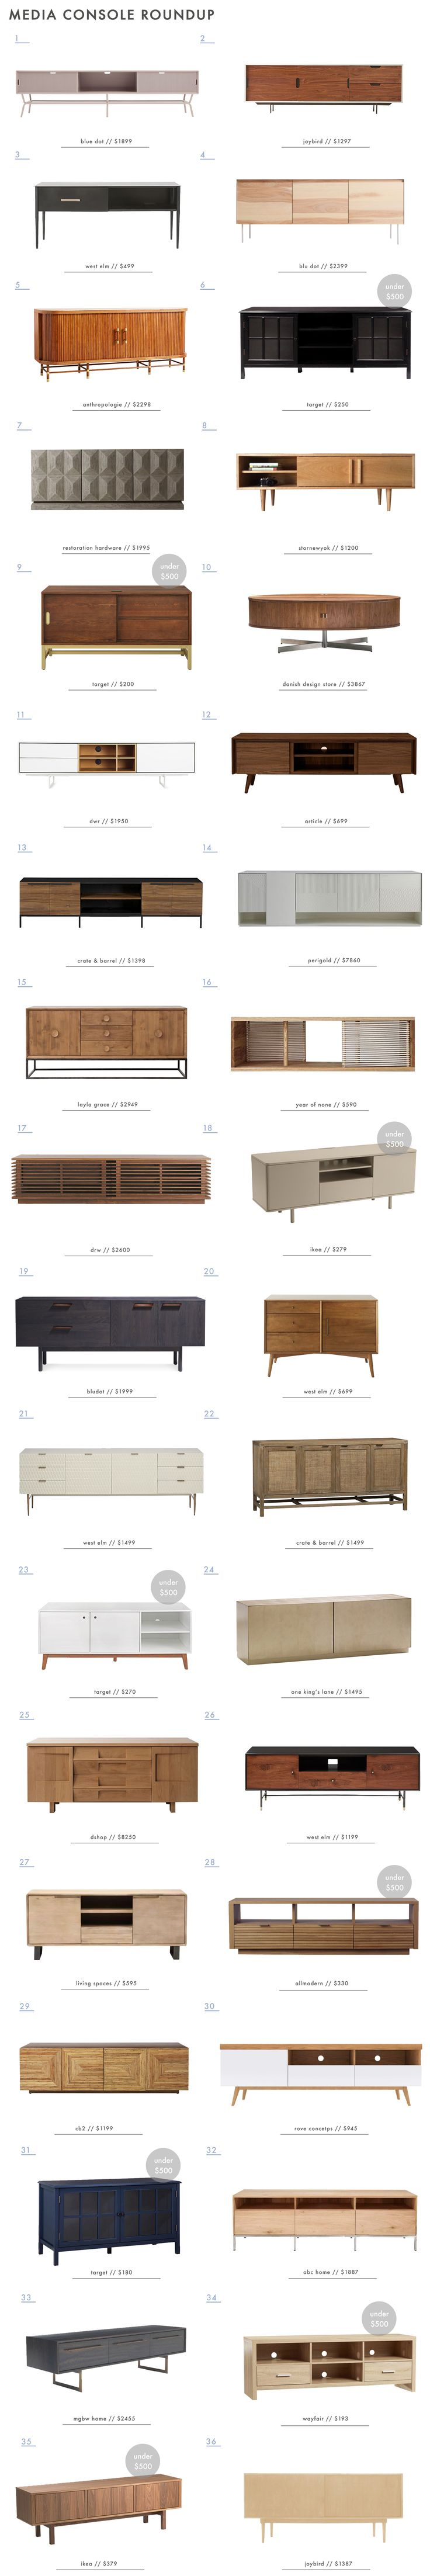 36 of our favorite media consoles!